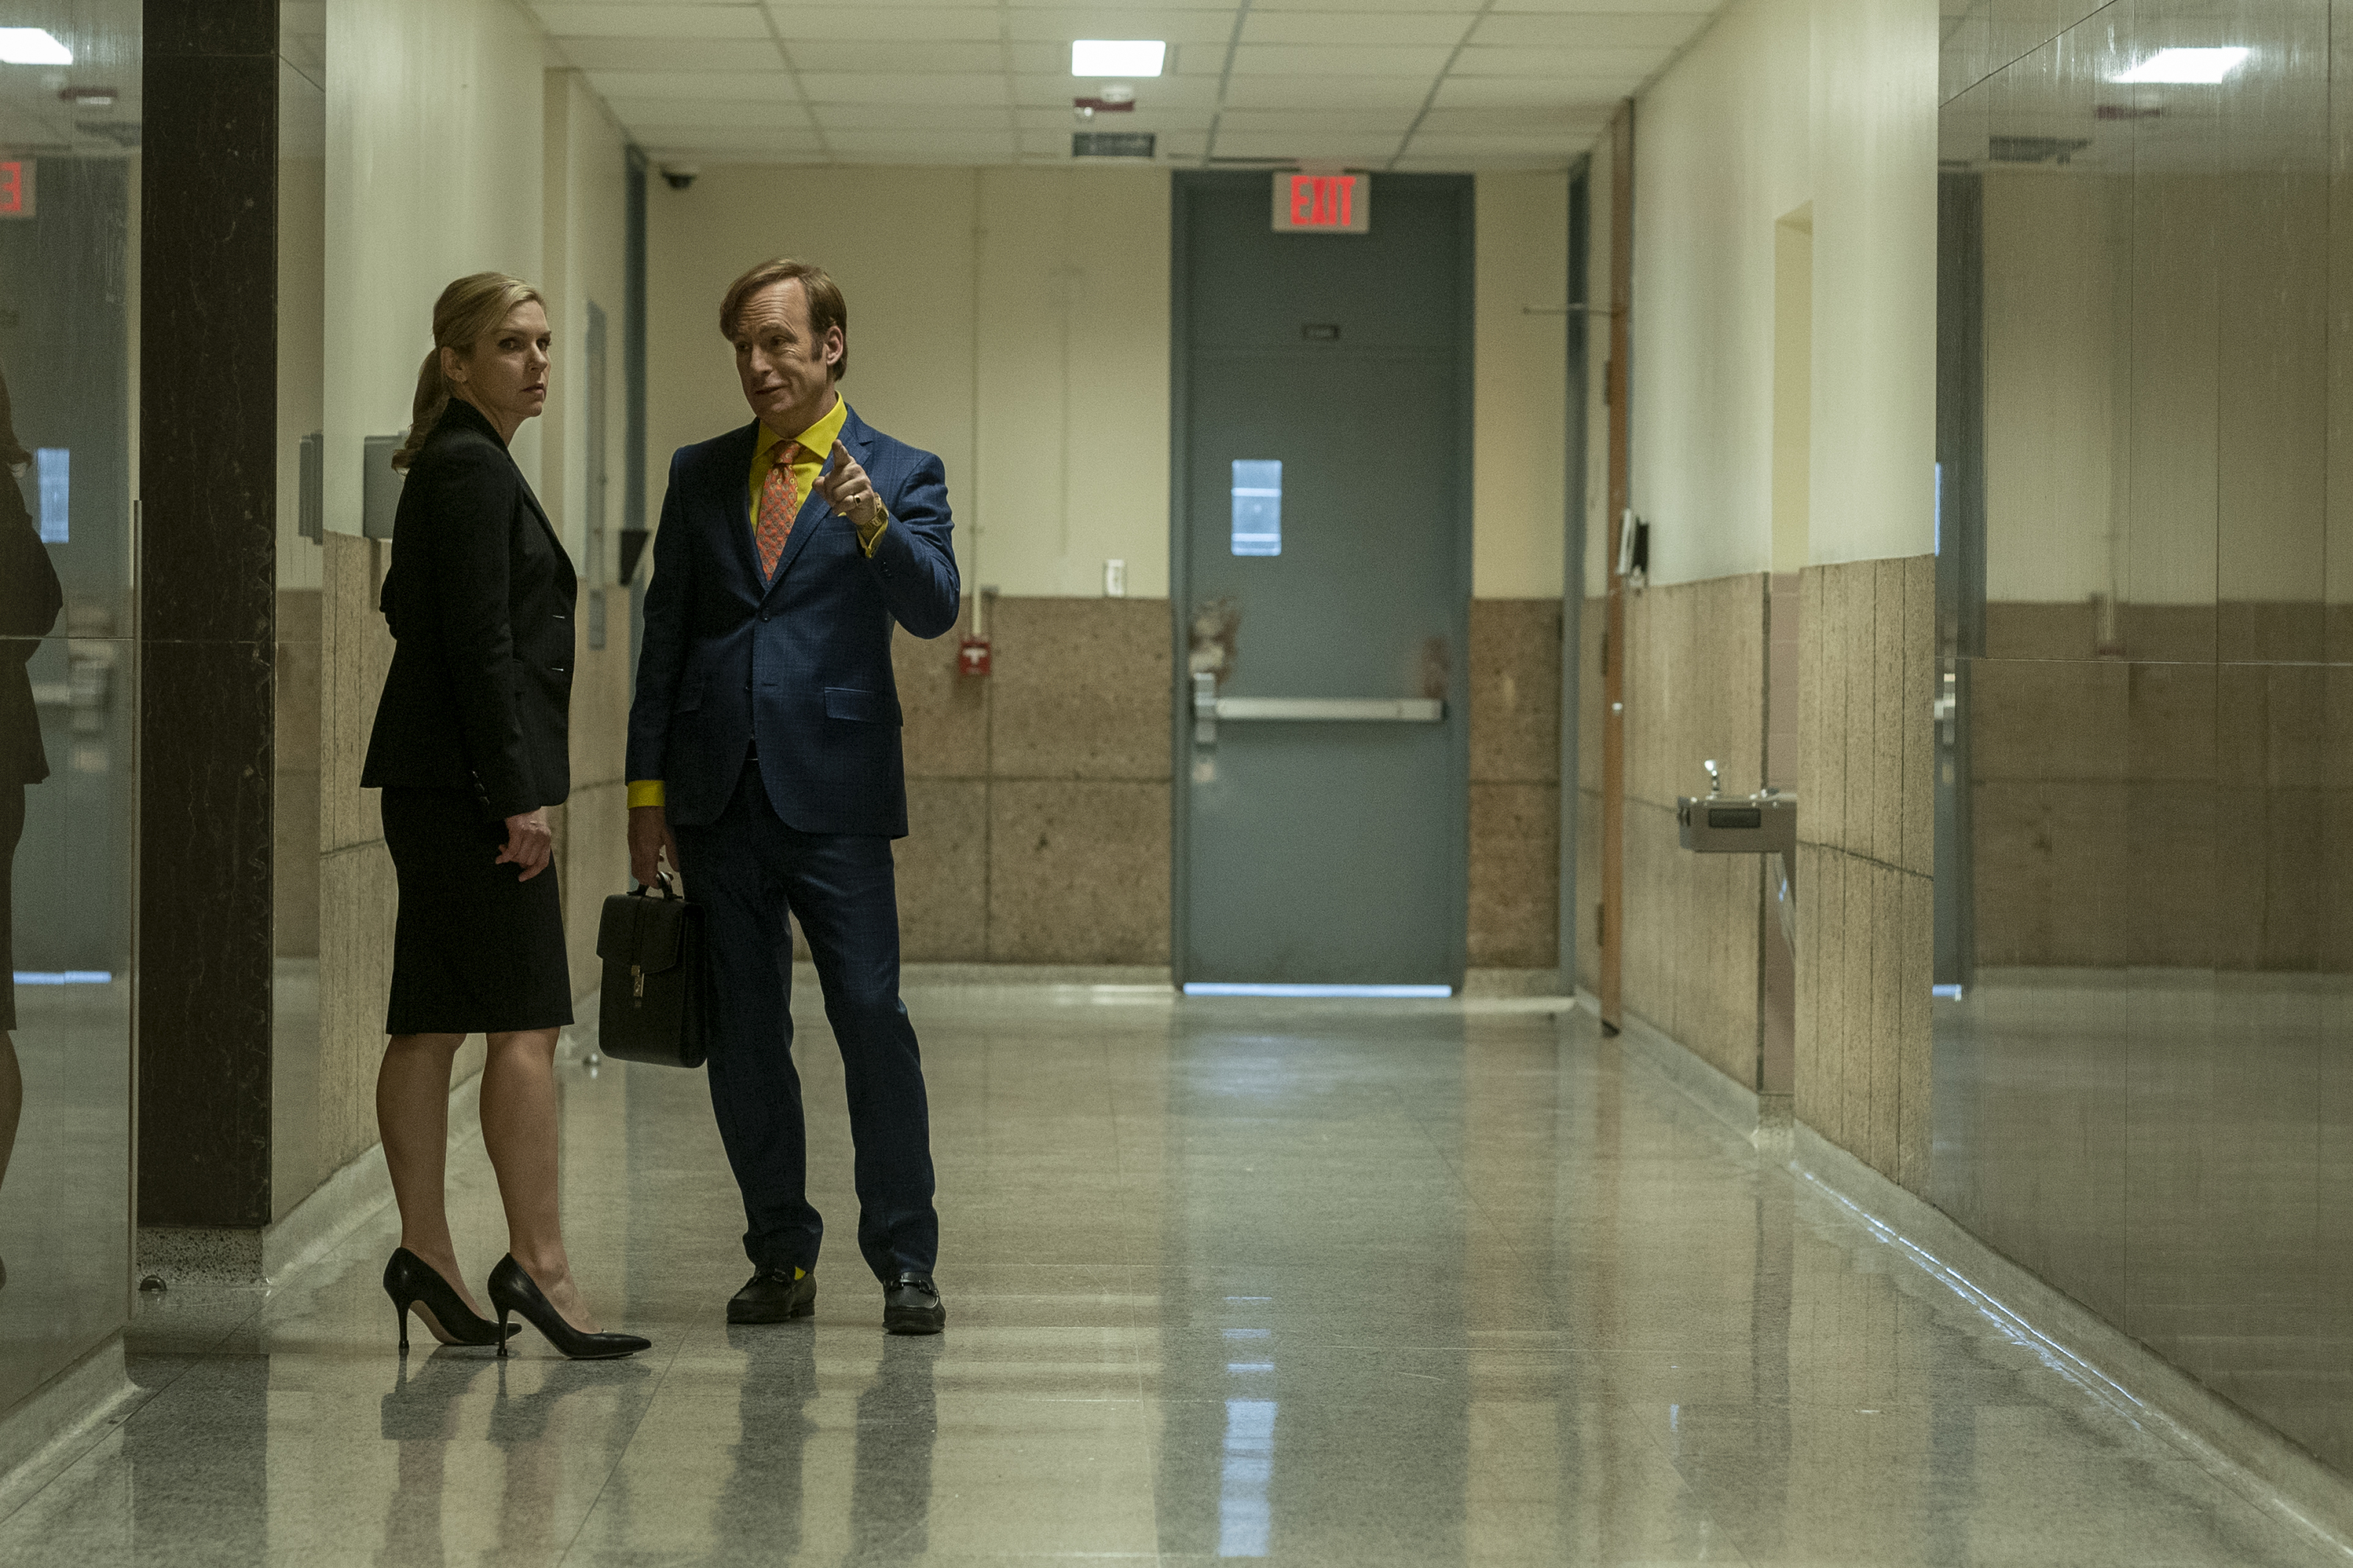 Better Call Saul Season 5, Episode 7: Preview and live stream